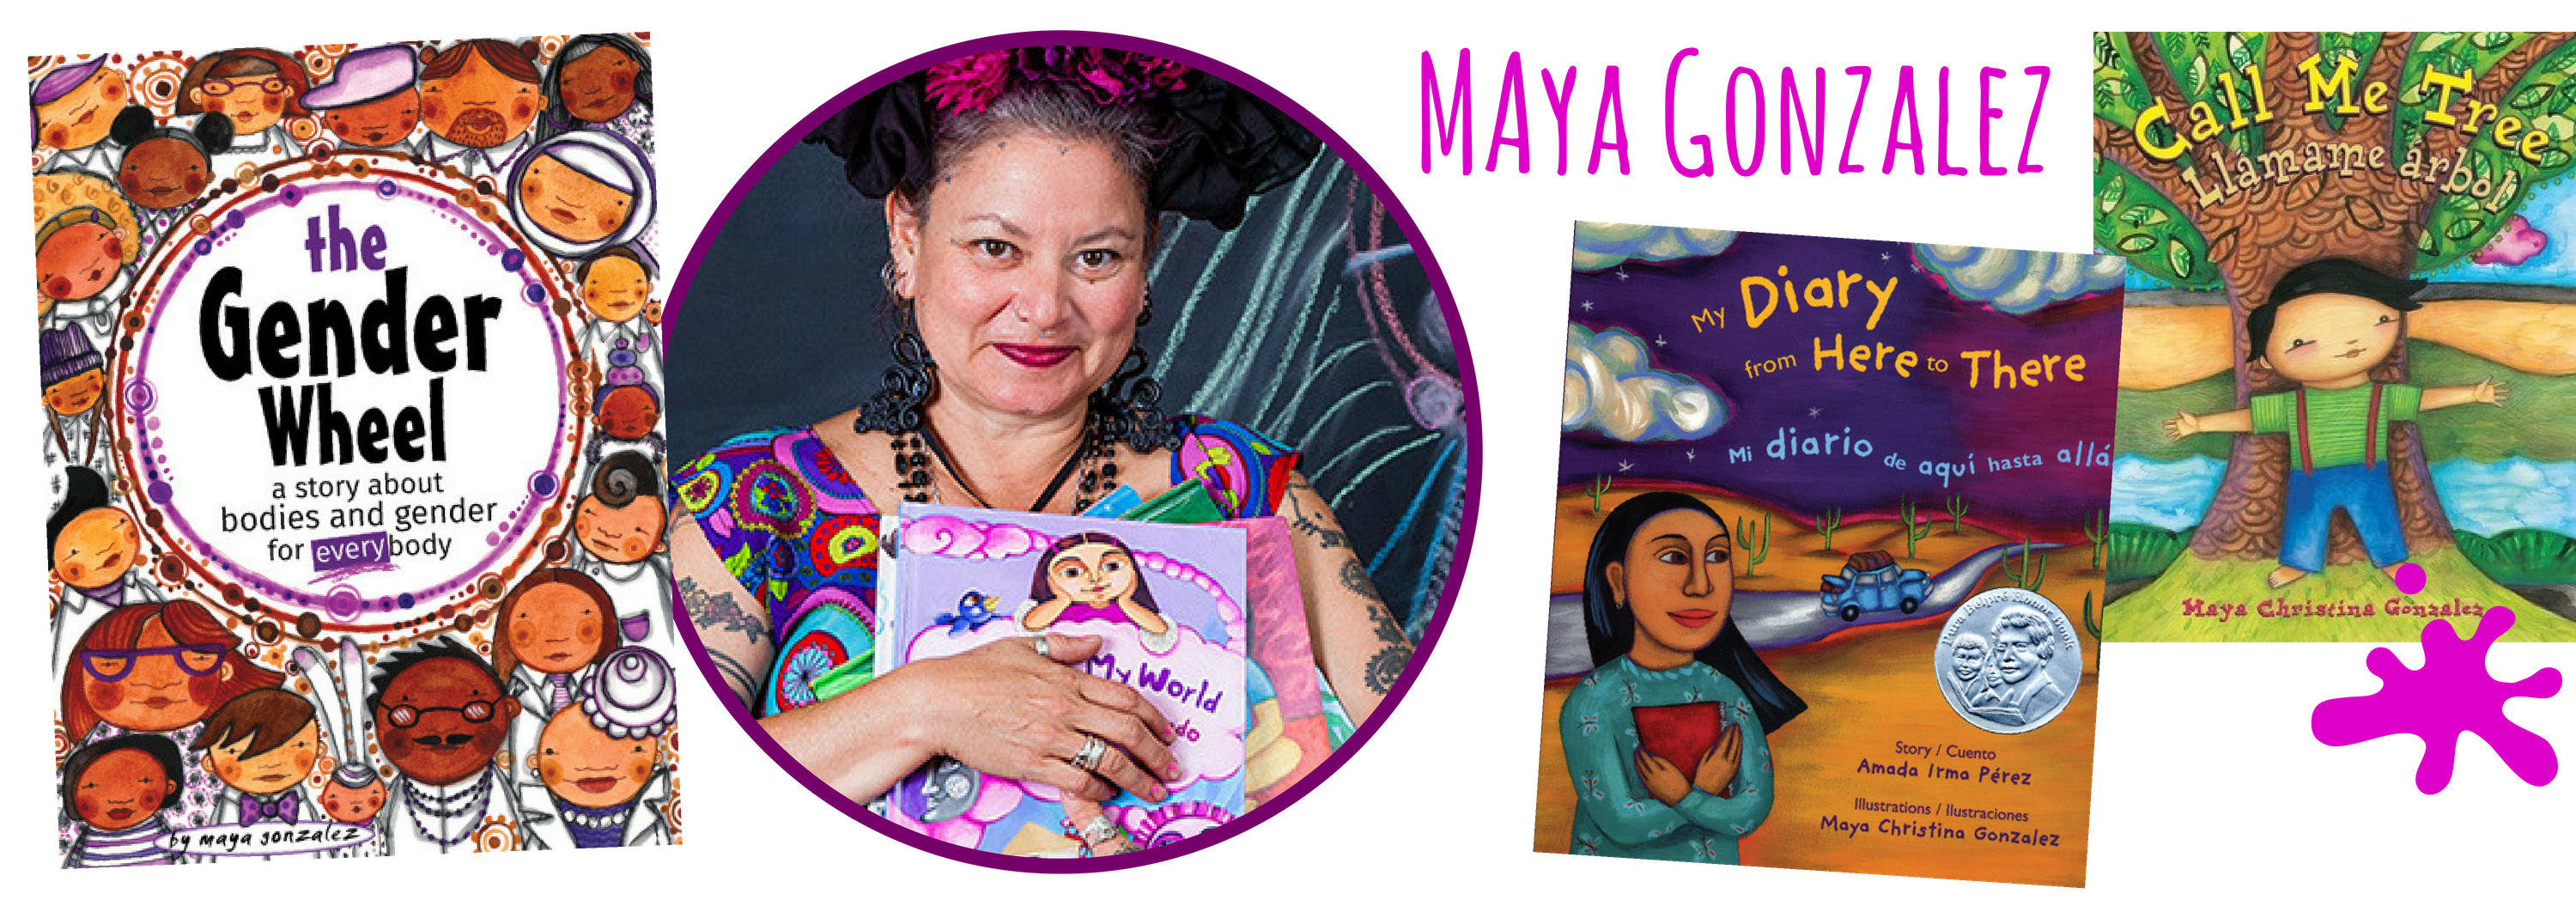 Maya Gonzalez for Children's Book Academy